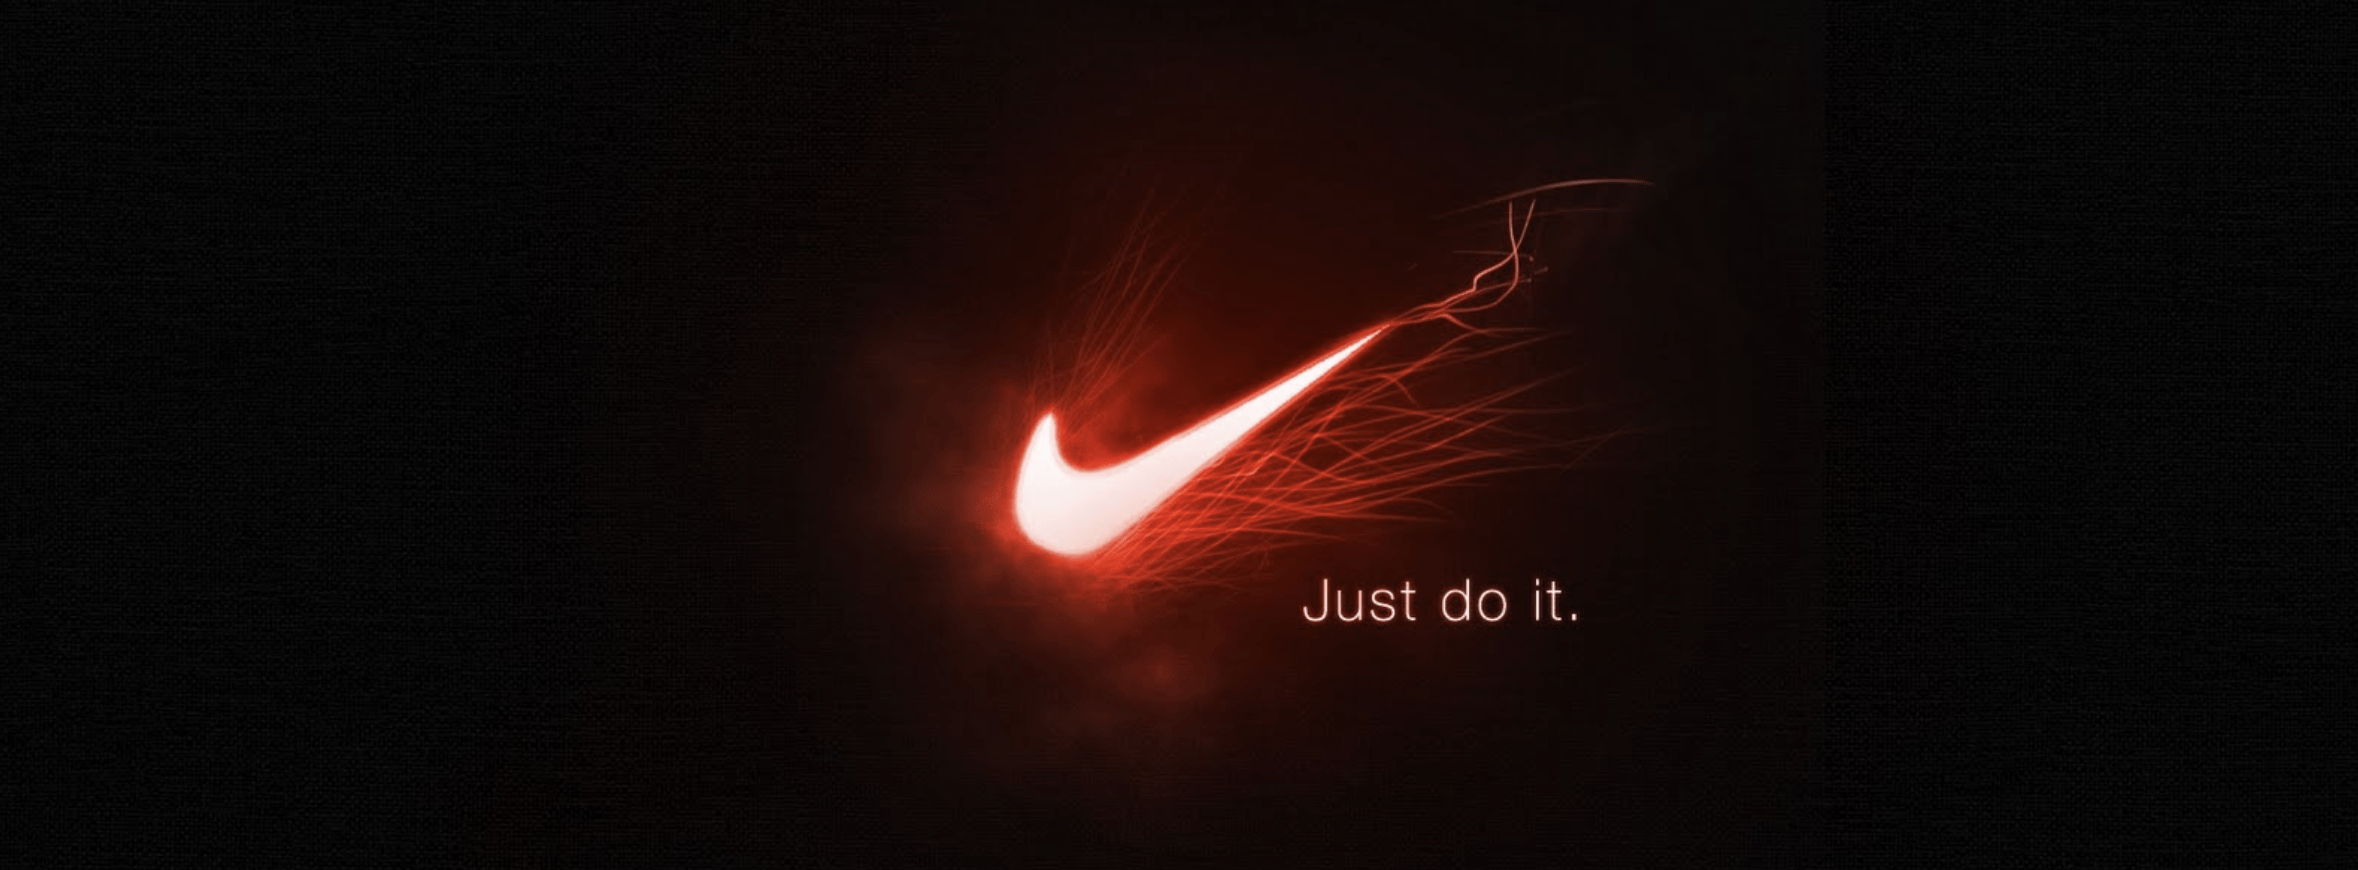 Just do it Nike inspiration